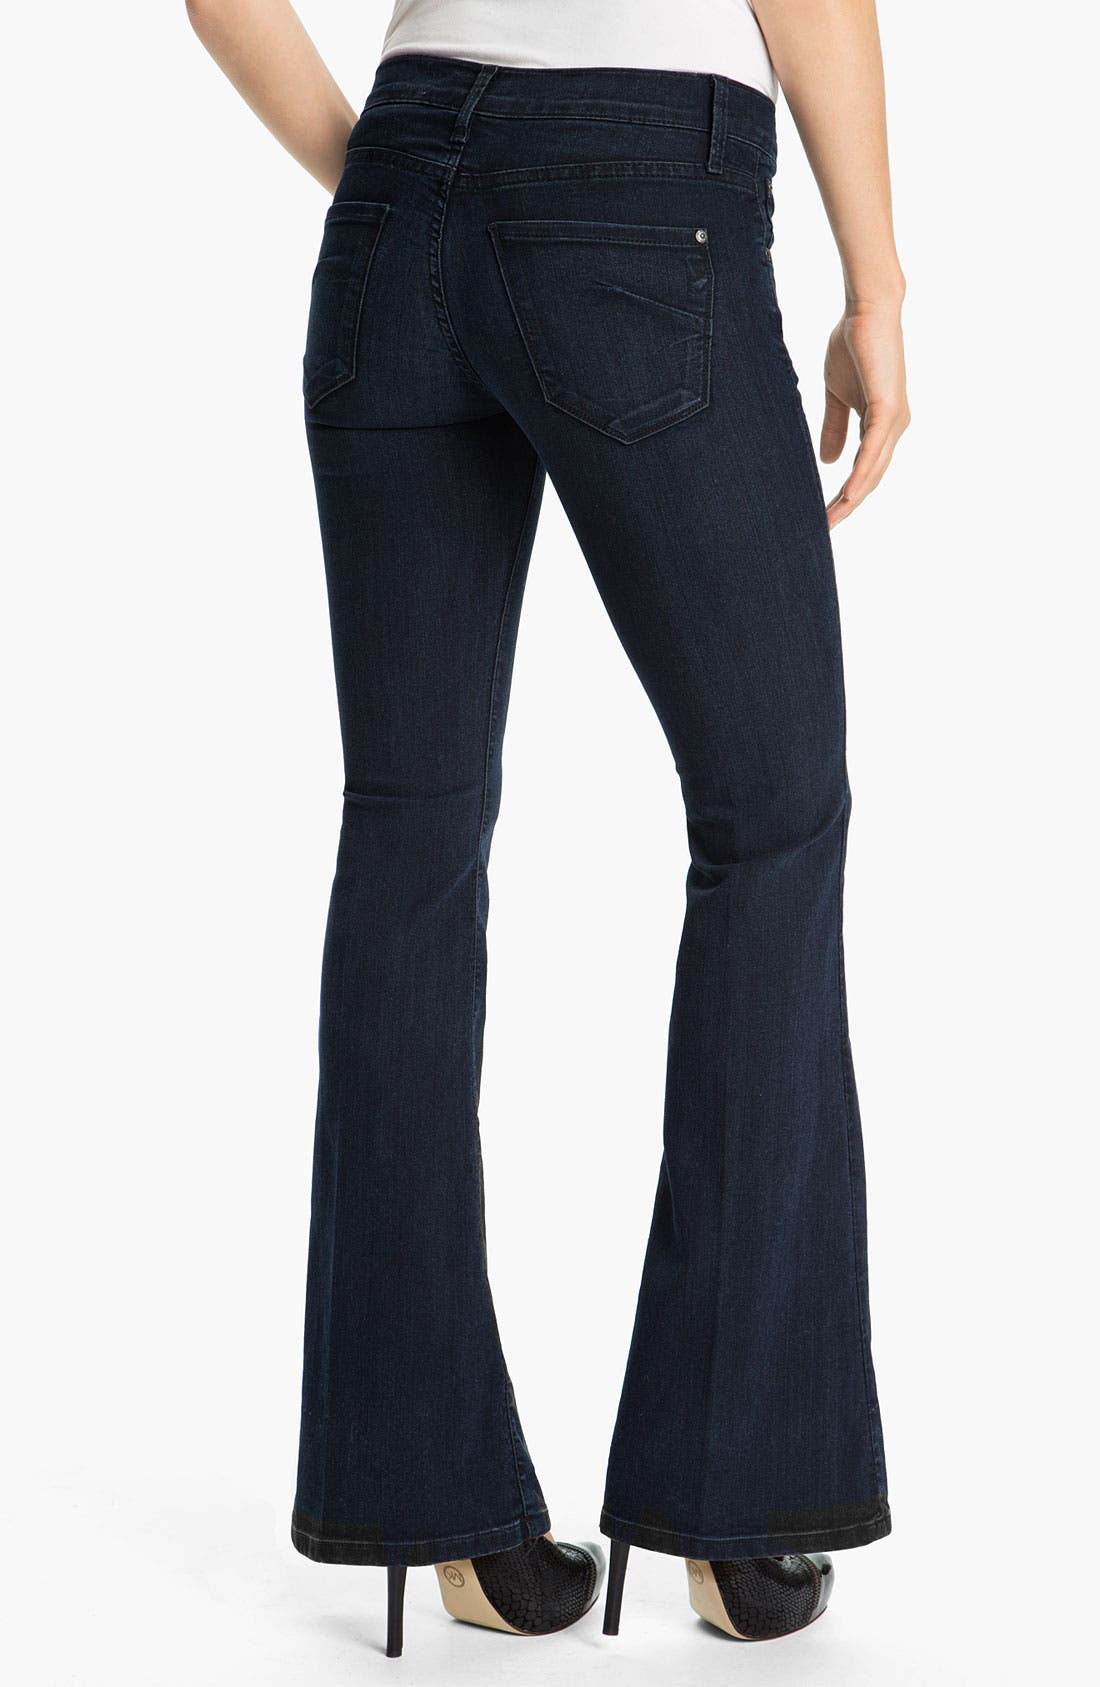 Alternate Image 2  - James Jeans 'Ultra Flare' Jeans (Amore) (Petite)